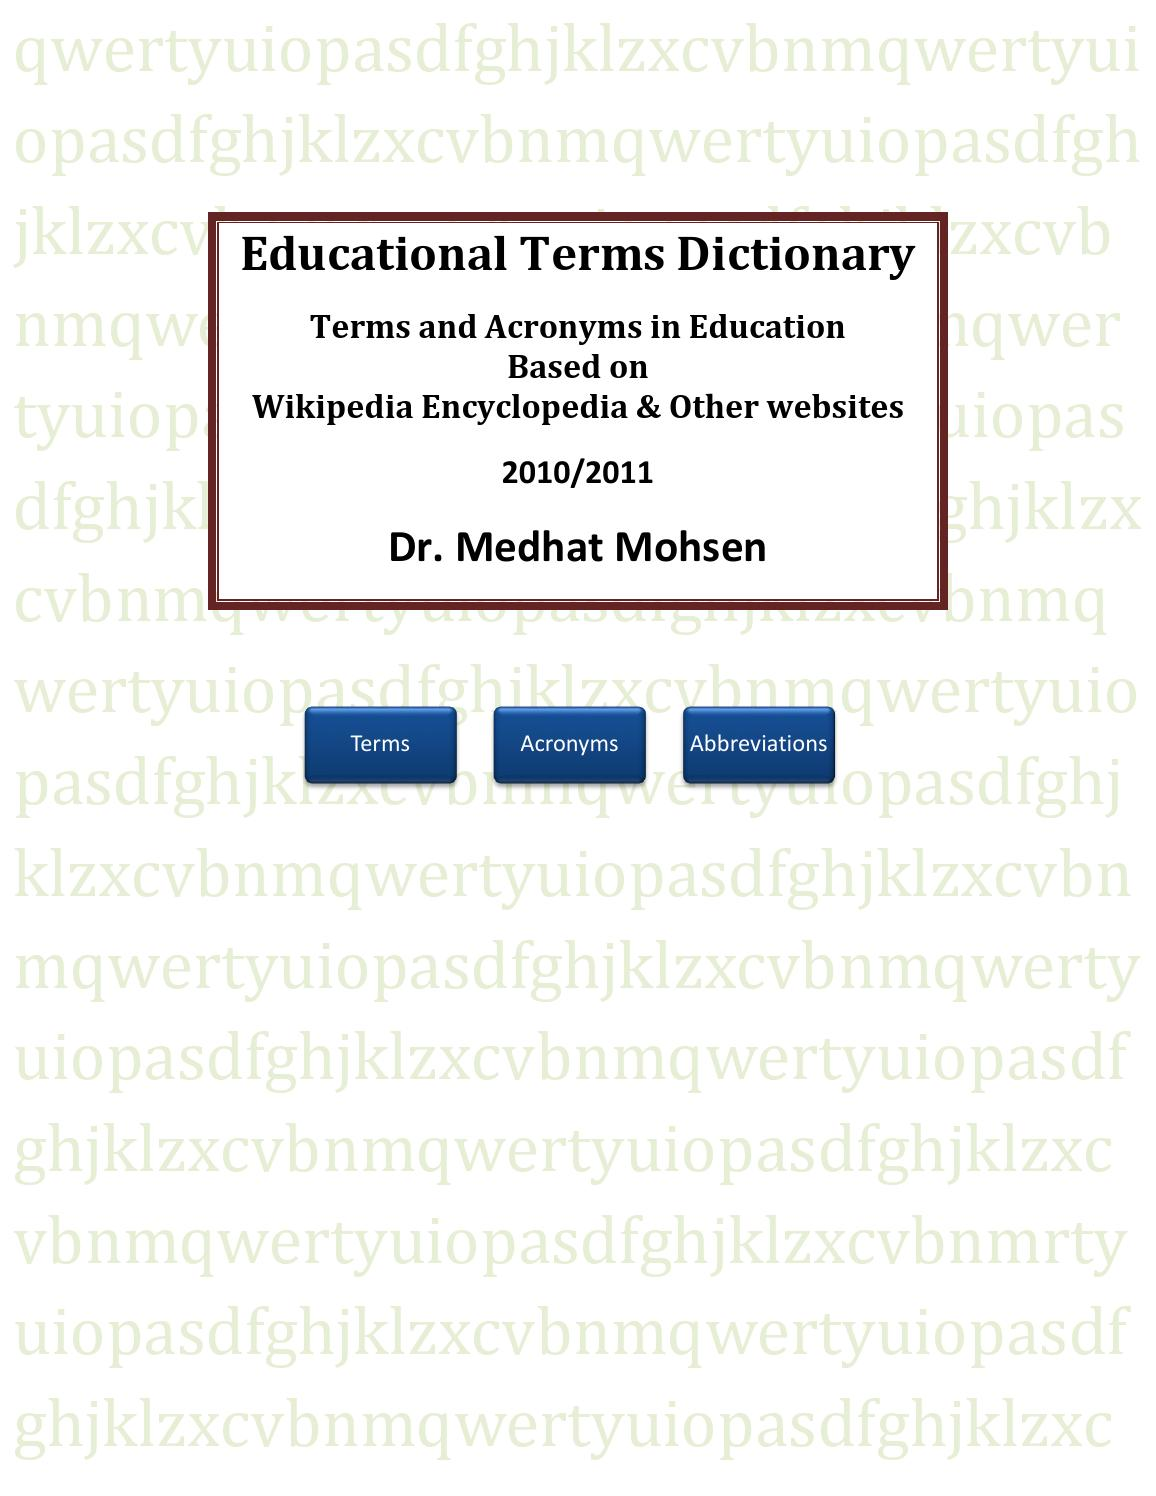 Explanatory dictionaries and abbreviations dictionaries: a selection of sites